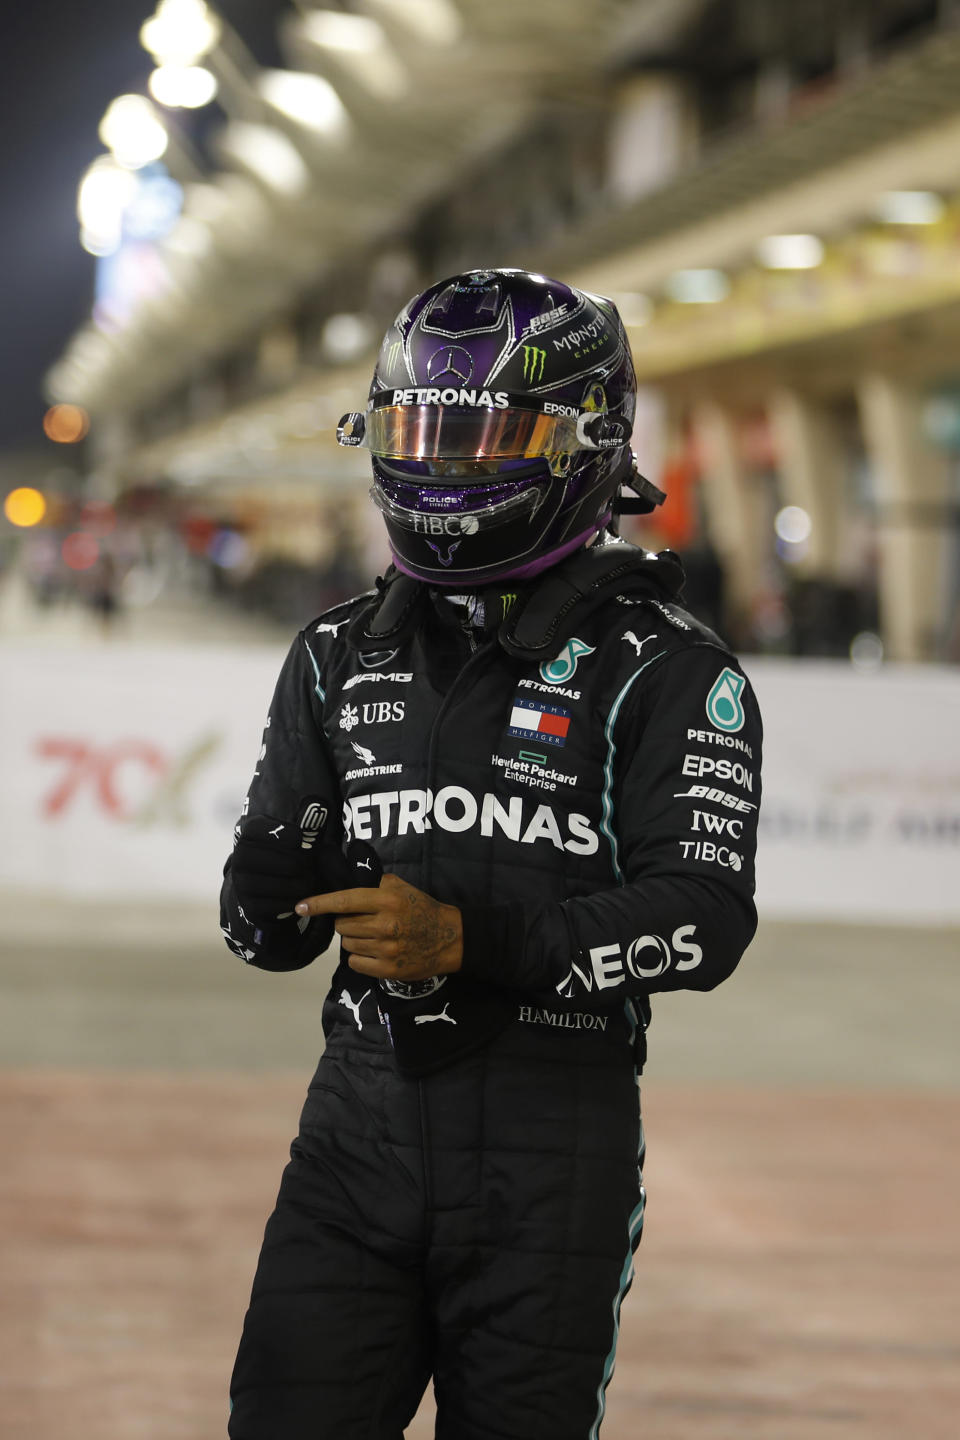 Mercedes driver Lewis Hamilton of Britain, right, celebrates after winning the pole position after the qualifying session at the Formula One Bahrain International Circuit in Sakhir, Bahrain, Saturday, Nov. 28, 2020. (Hamad Mohammed, Pool via AP)